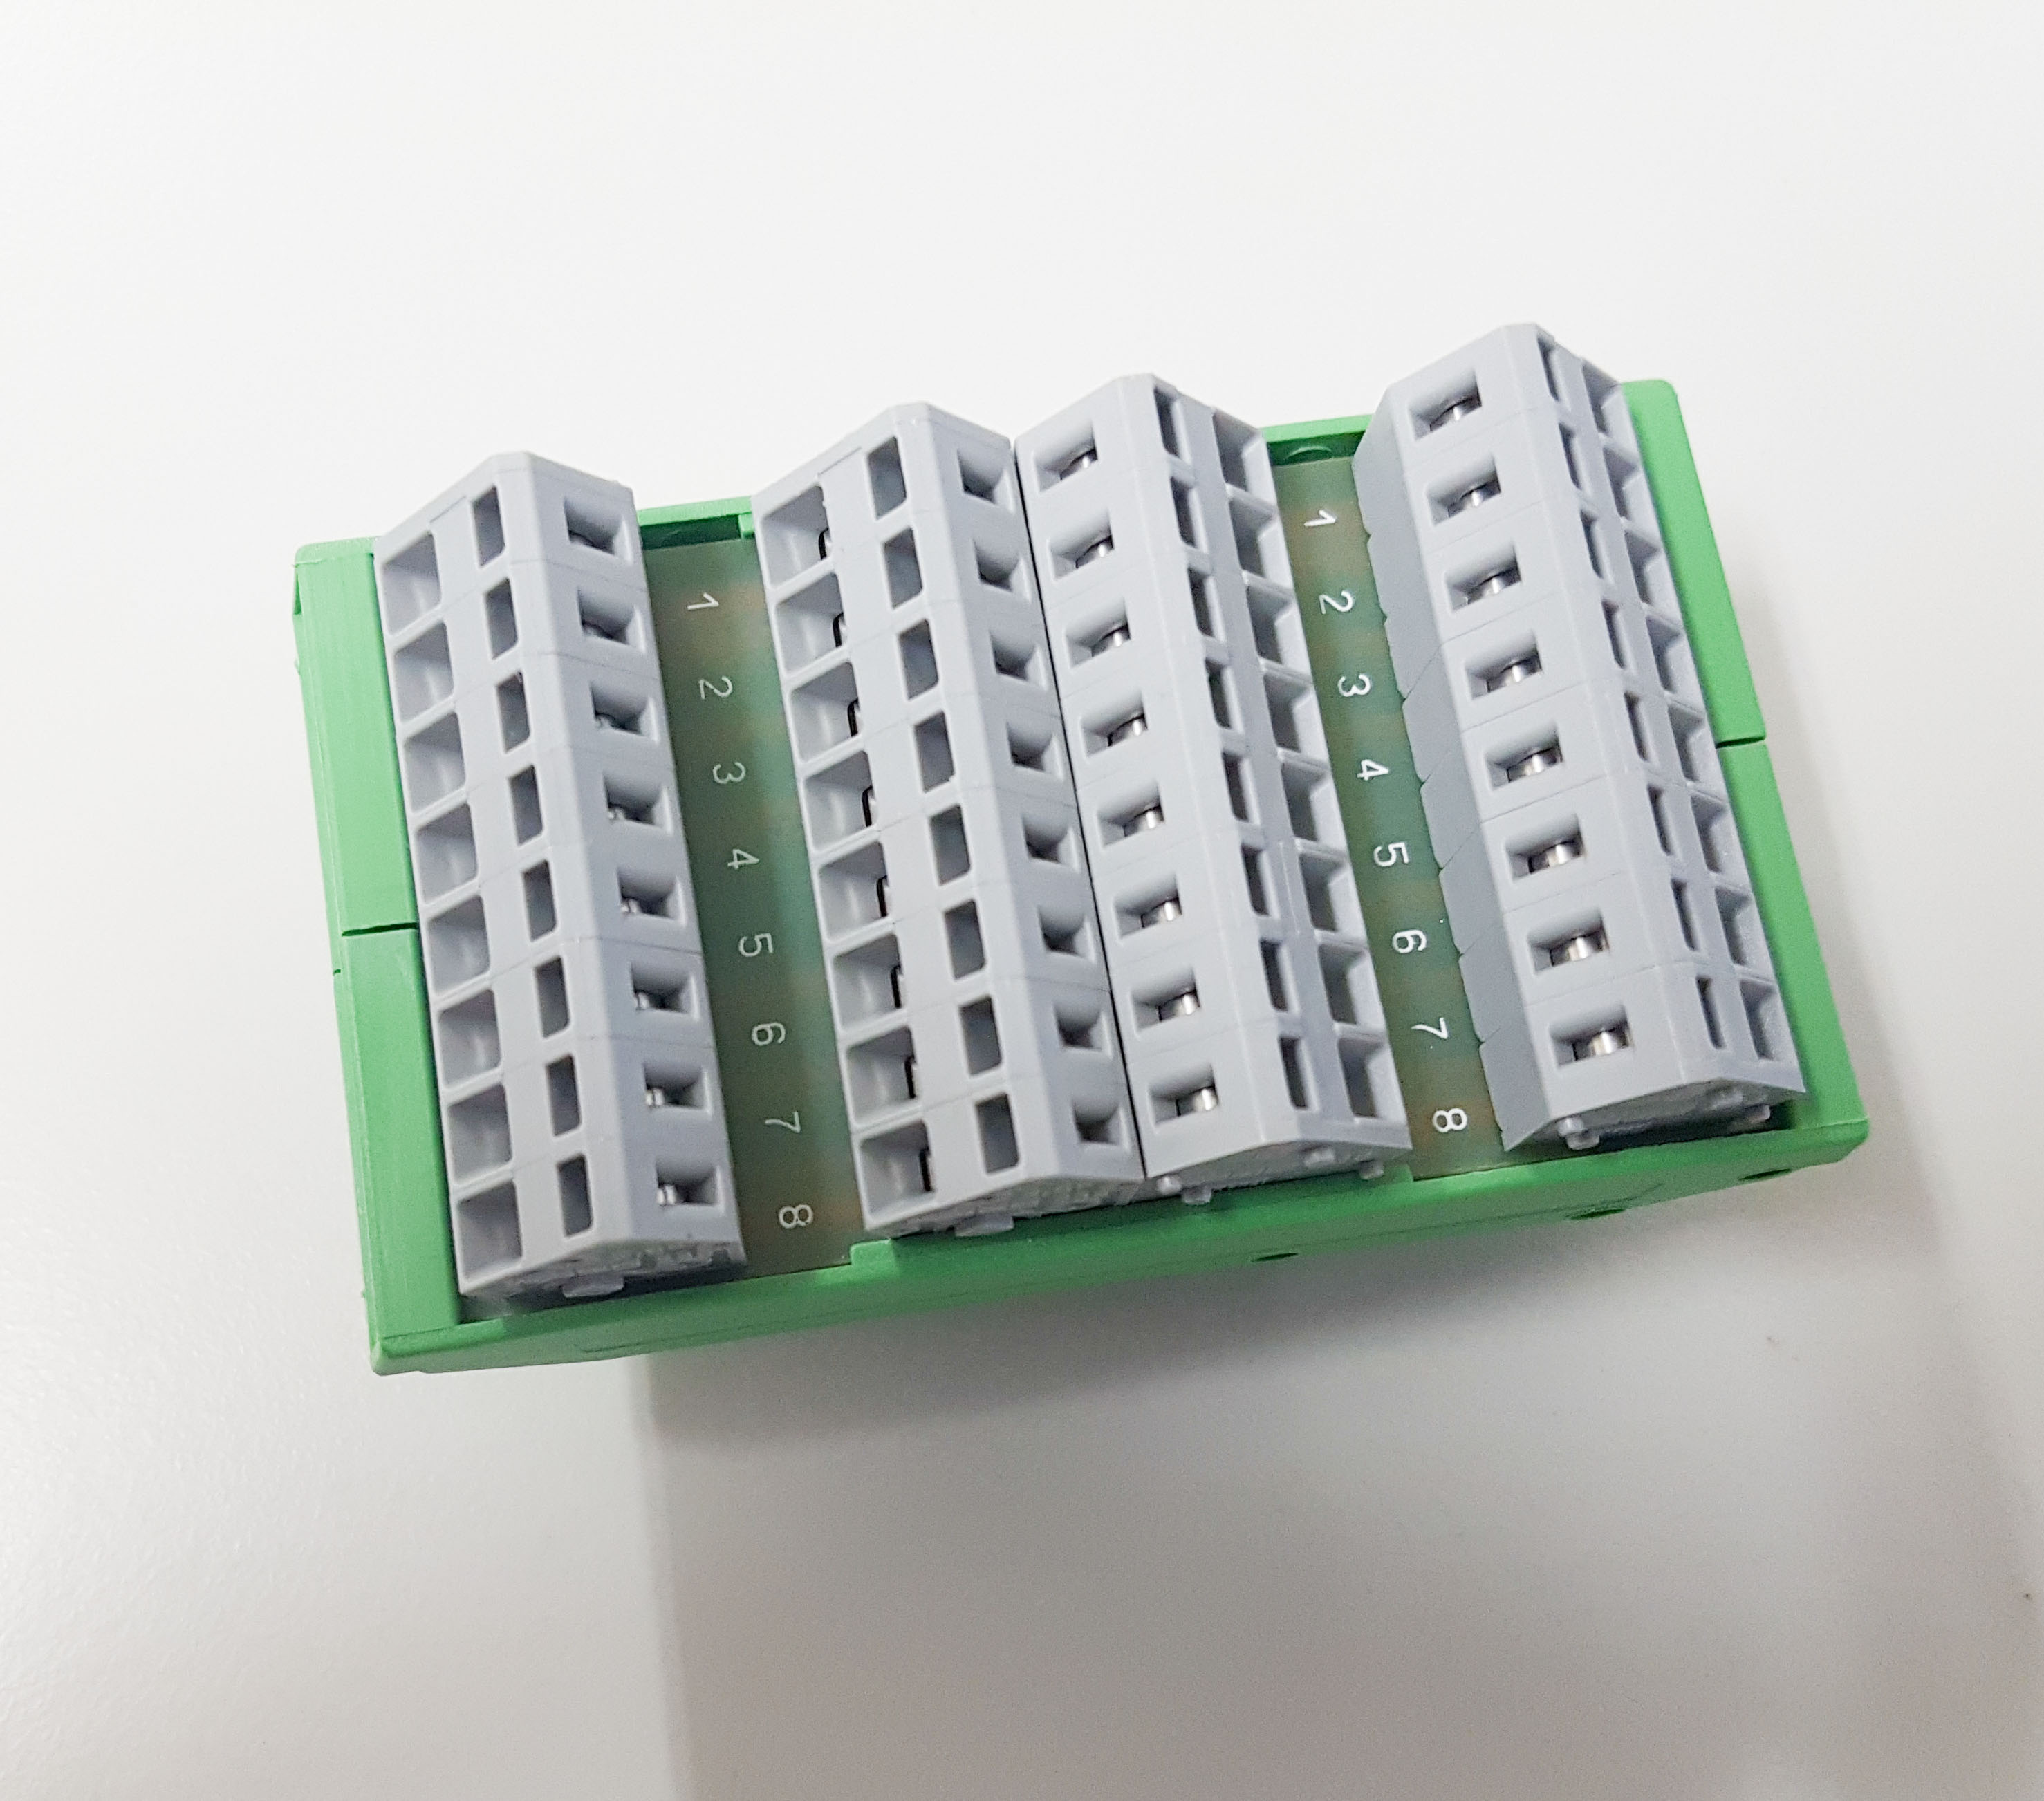 Terminal for DIN rail, Loxone Smart Home